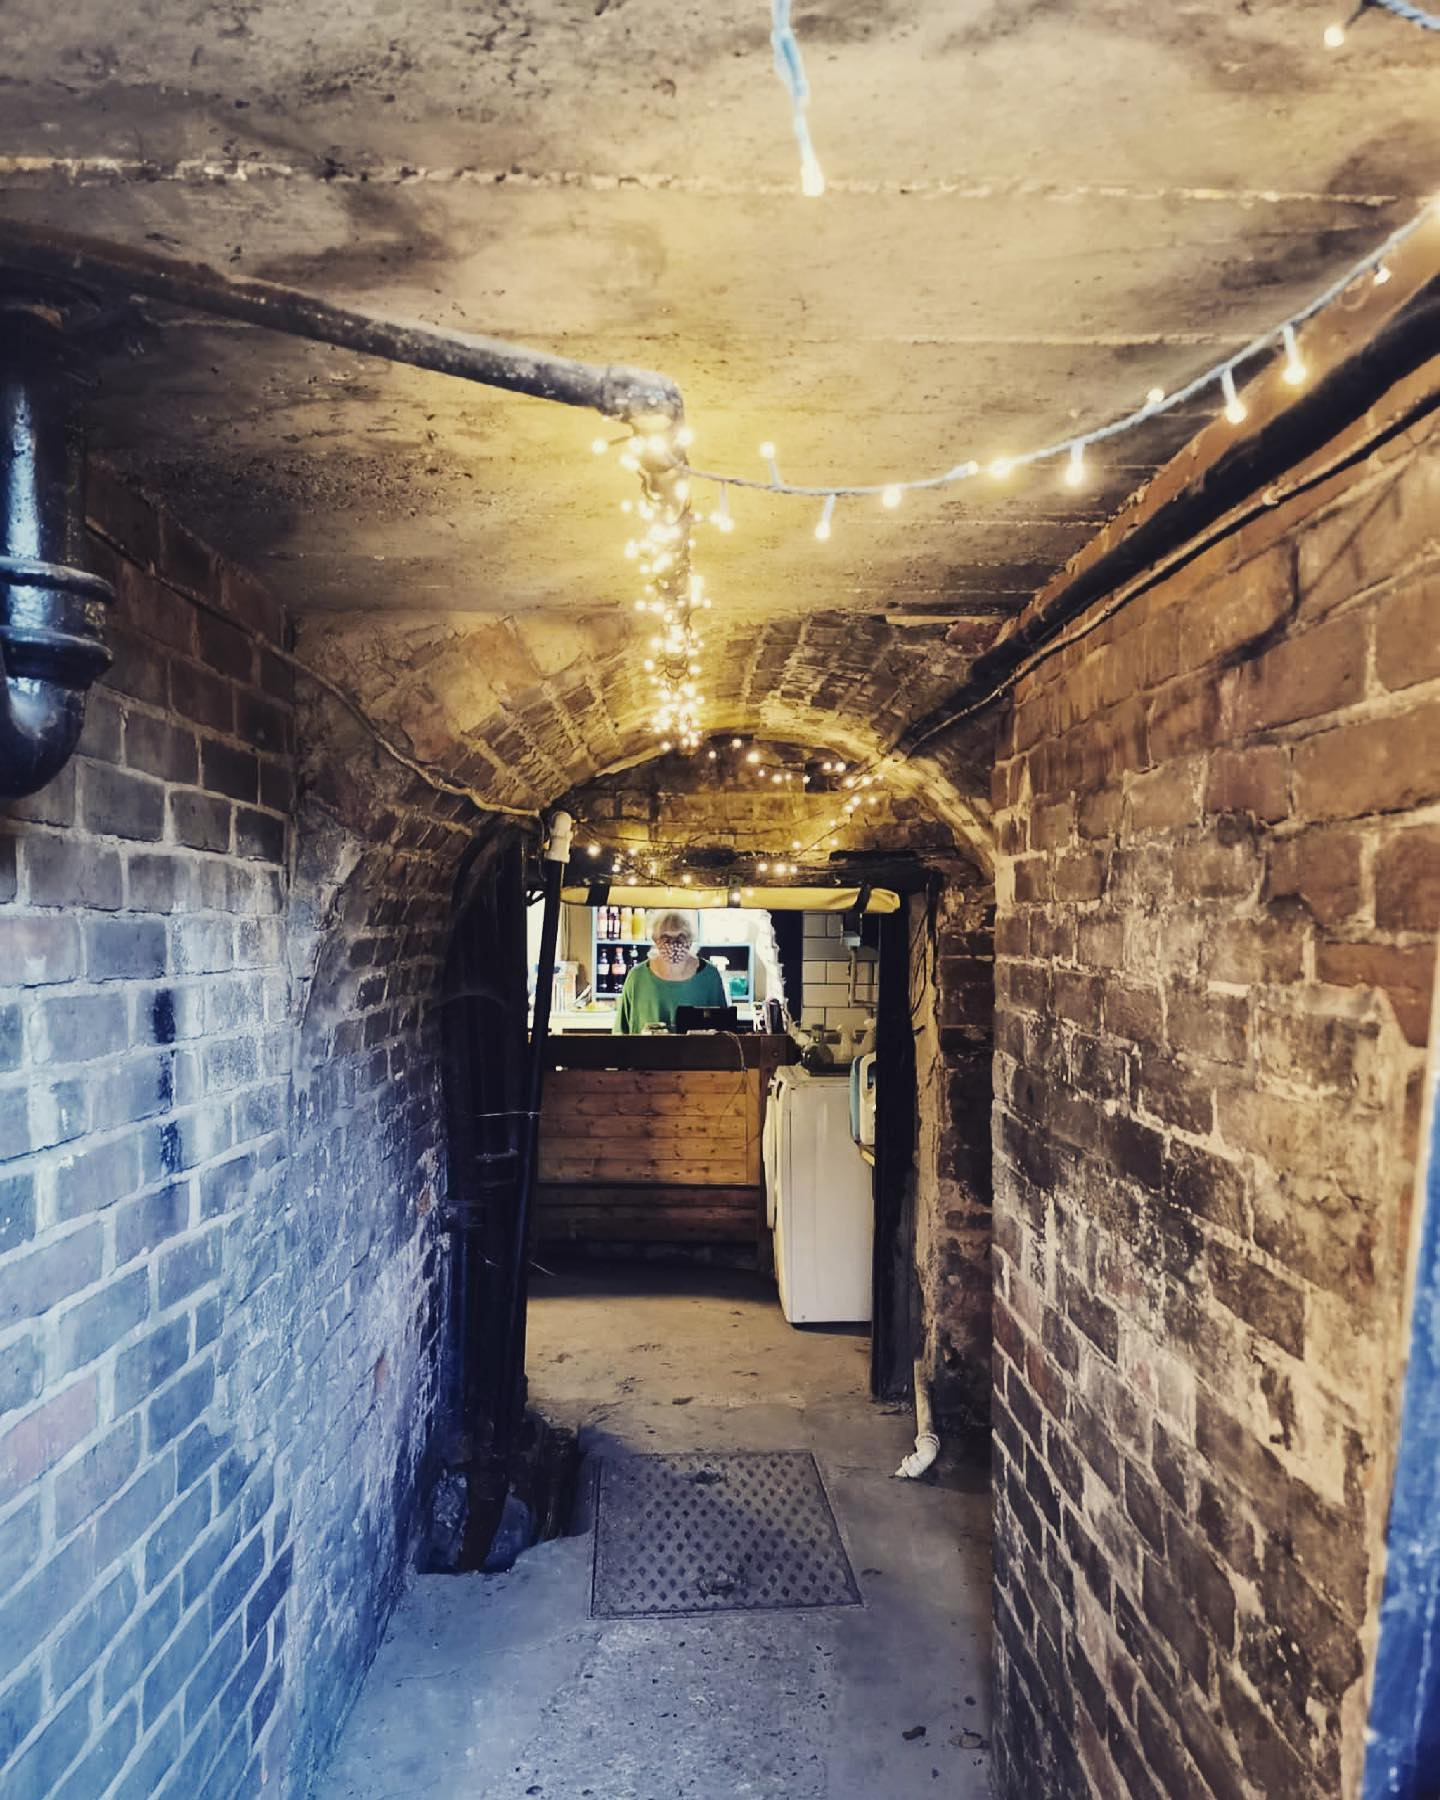 The path to the pints! Have you seen our basement bar yet? #realalepub #winchester #pubgarden #hampshirepubs #pottsbrewery #postlockdownpint #winchesterpubs #independentvenue #beergarden #grassrootsvenue #realale #pub #beergarden #bar #localpub